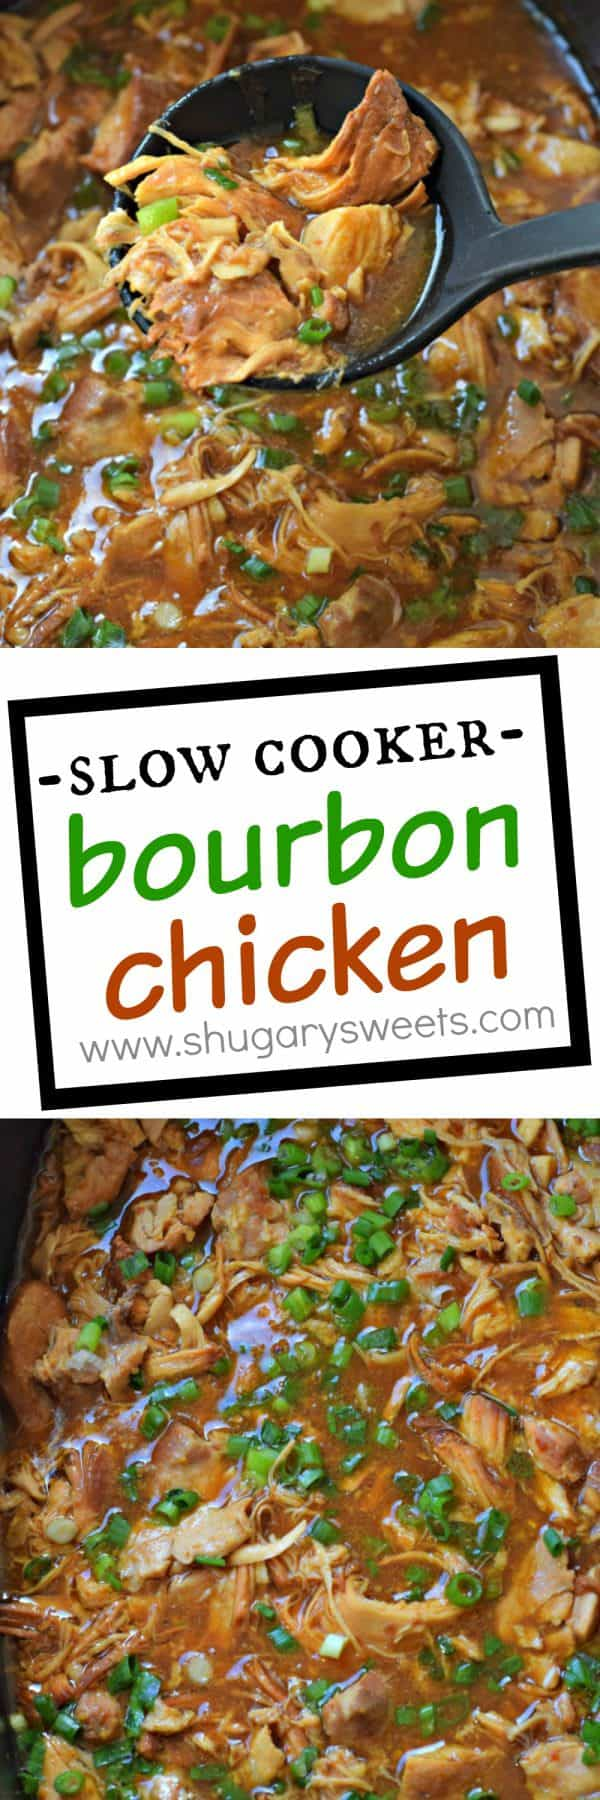 This Slow Cooker Bourbon Chicken recipe has a sweet, tangy glaze and must be put on your dinner menu soon!